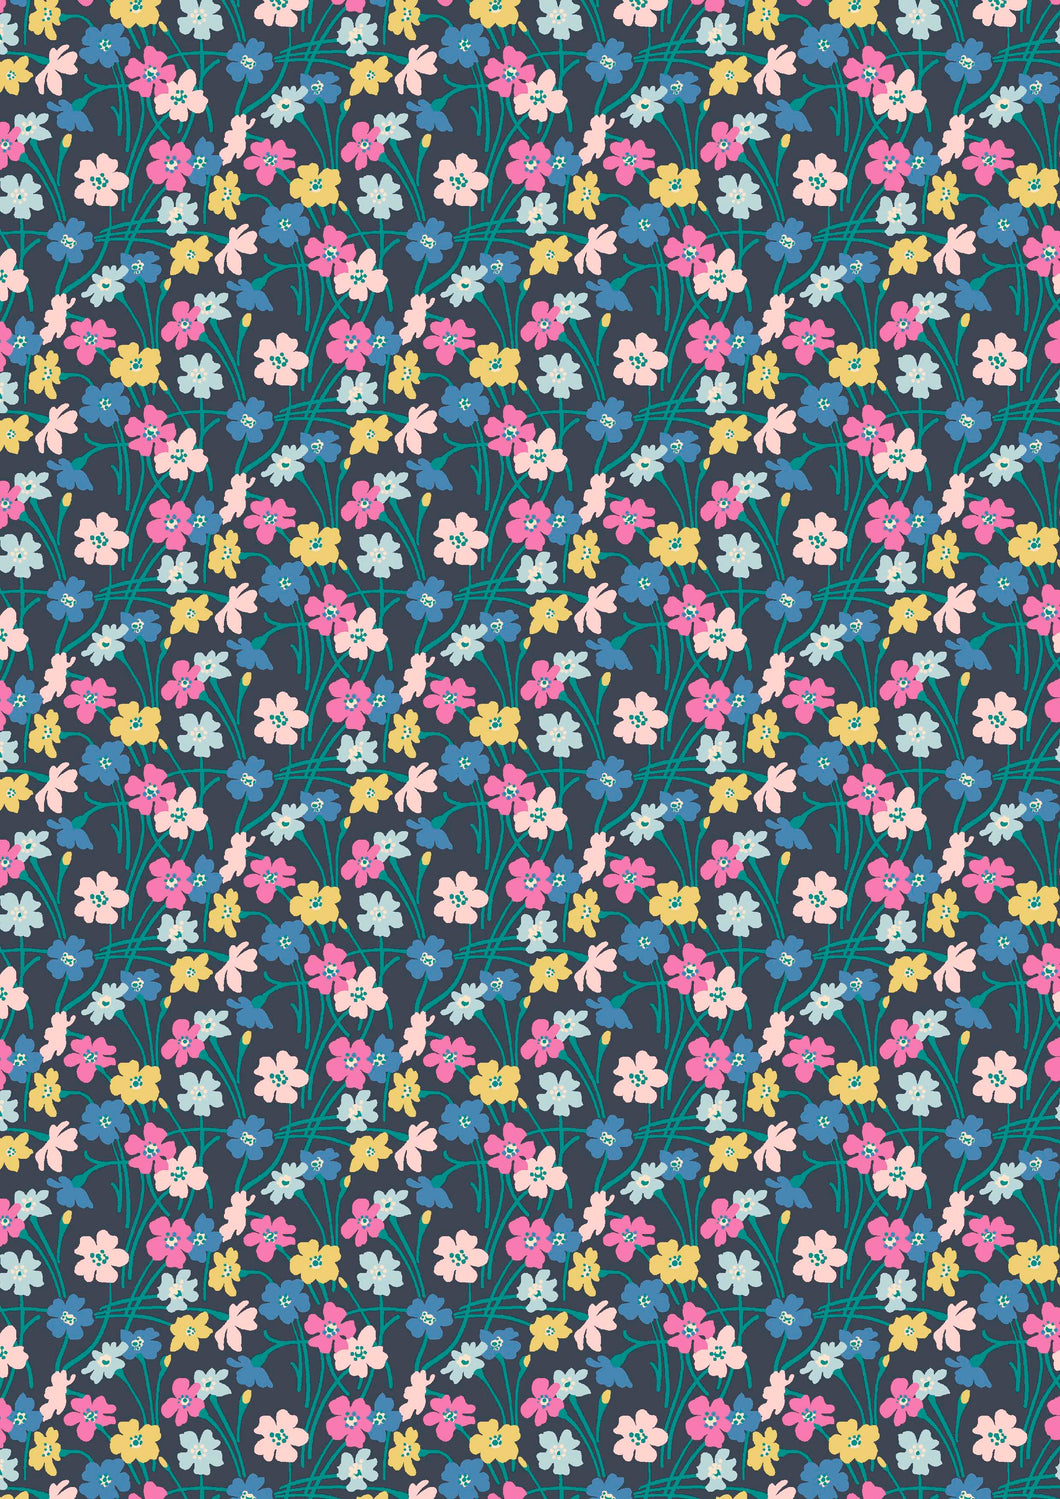 Dancing buttercups 923A Liberty of London Deco Dance collection